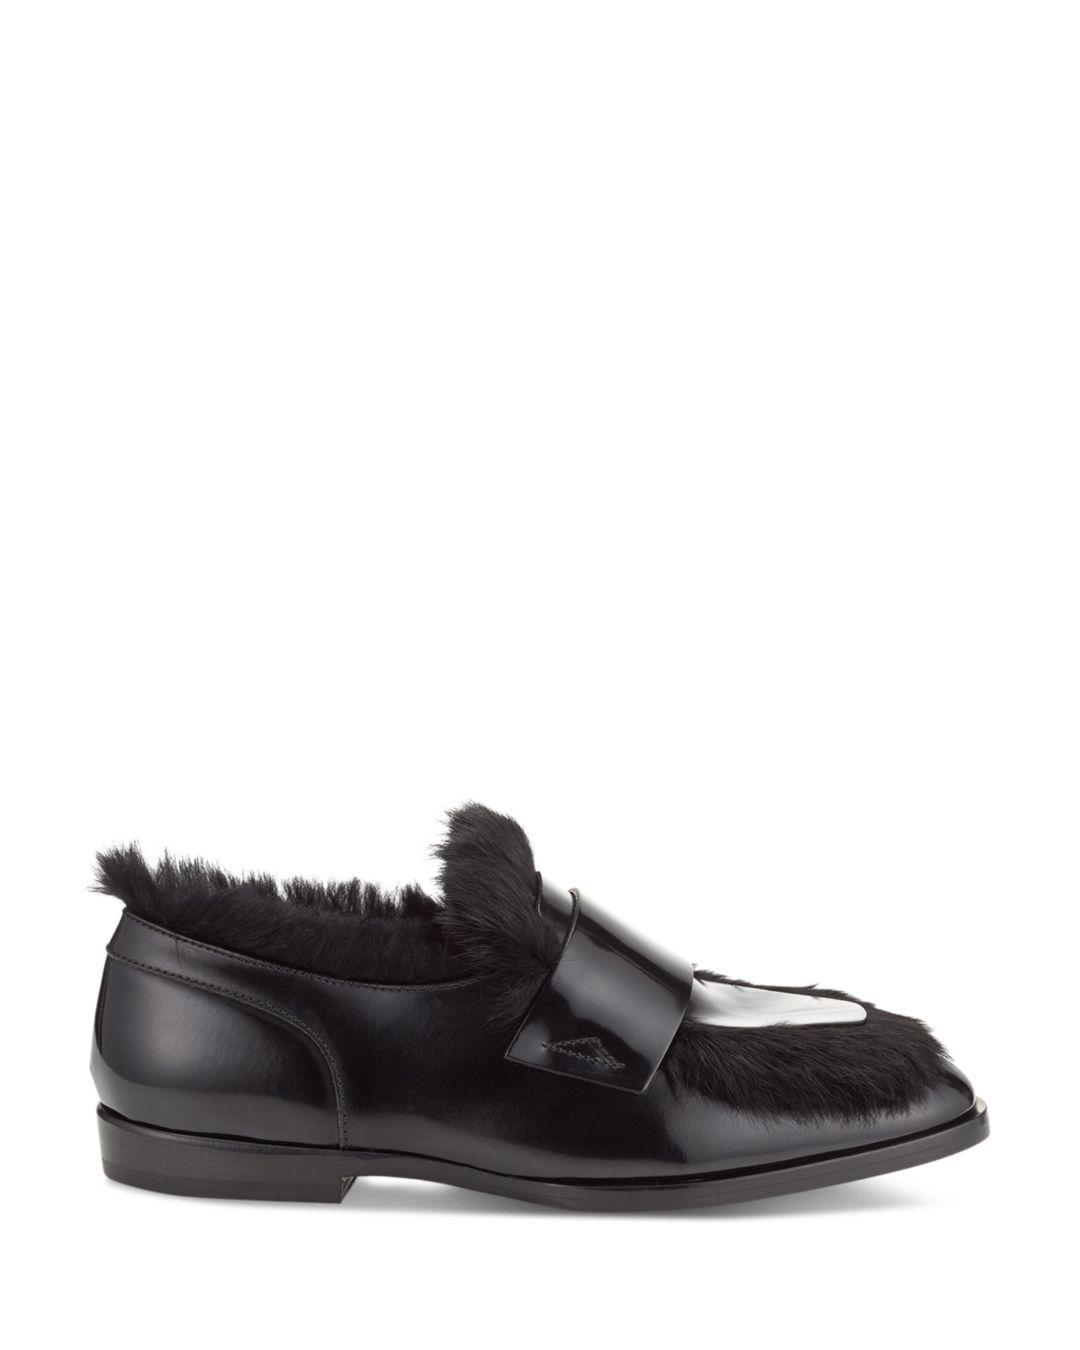 2832cbaac22 Lyst - Jimmy Choo Men s Tedi Leather   Rabbit Fur Loafers in Black ...